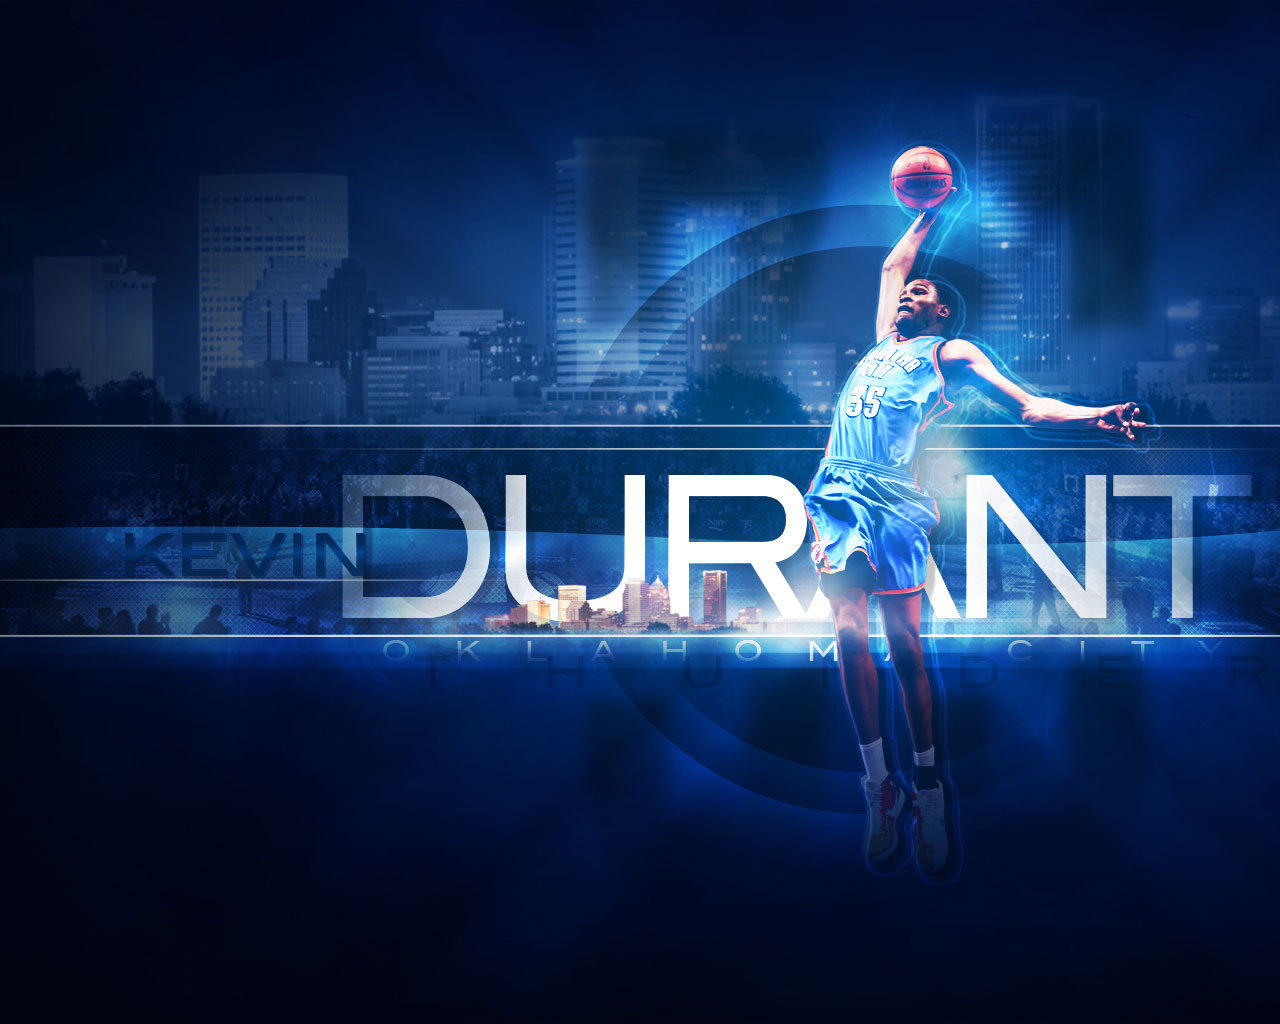 Kevin Durant images Nice Backgrounds HD wallpaper and 1280x1024